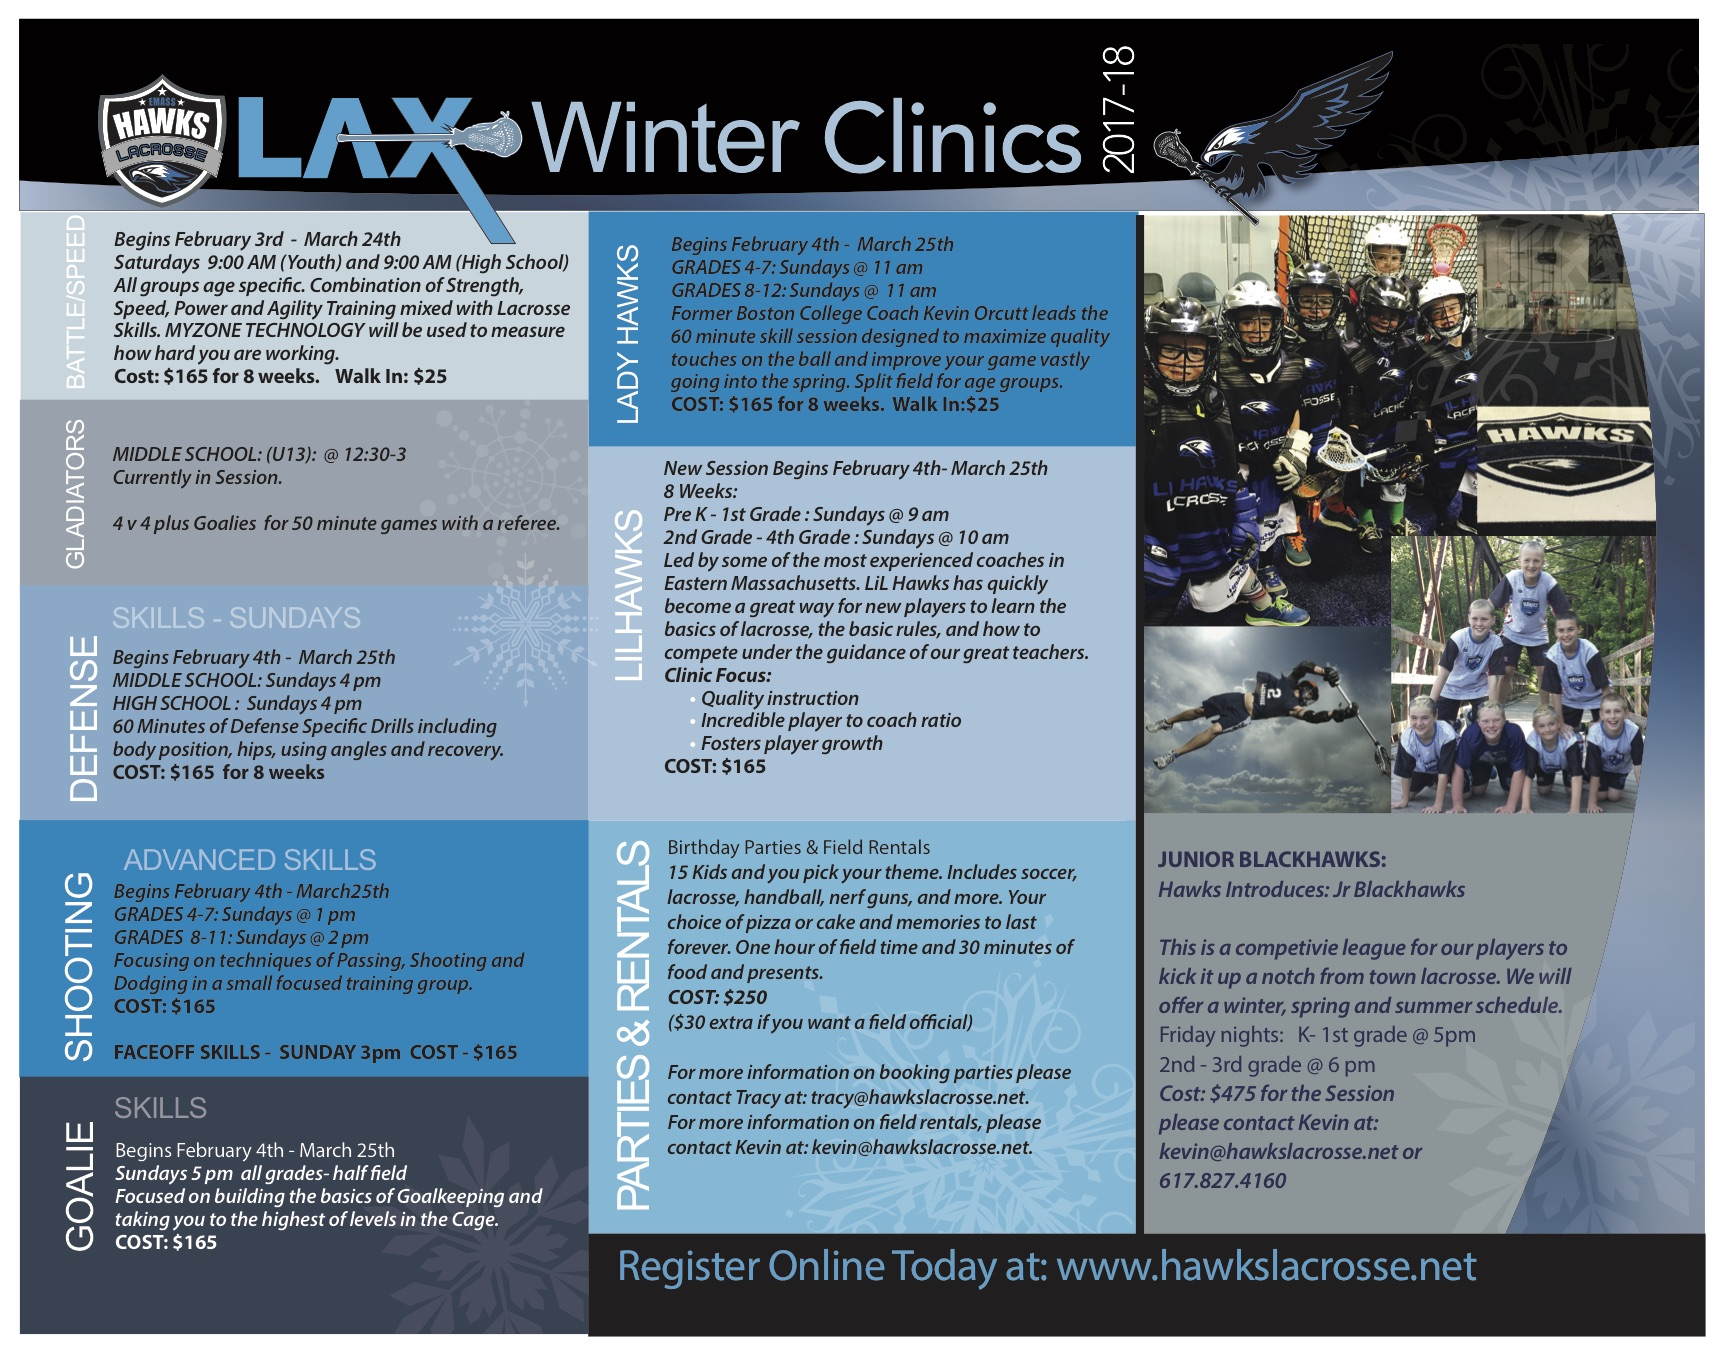 HAWKS NEW WINTER CLINICS BEGIN 2/3